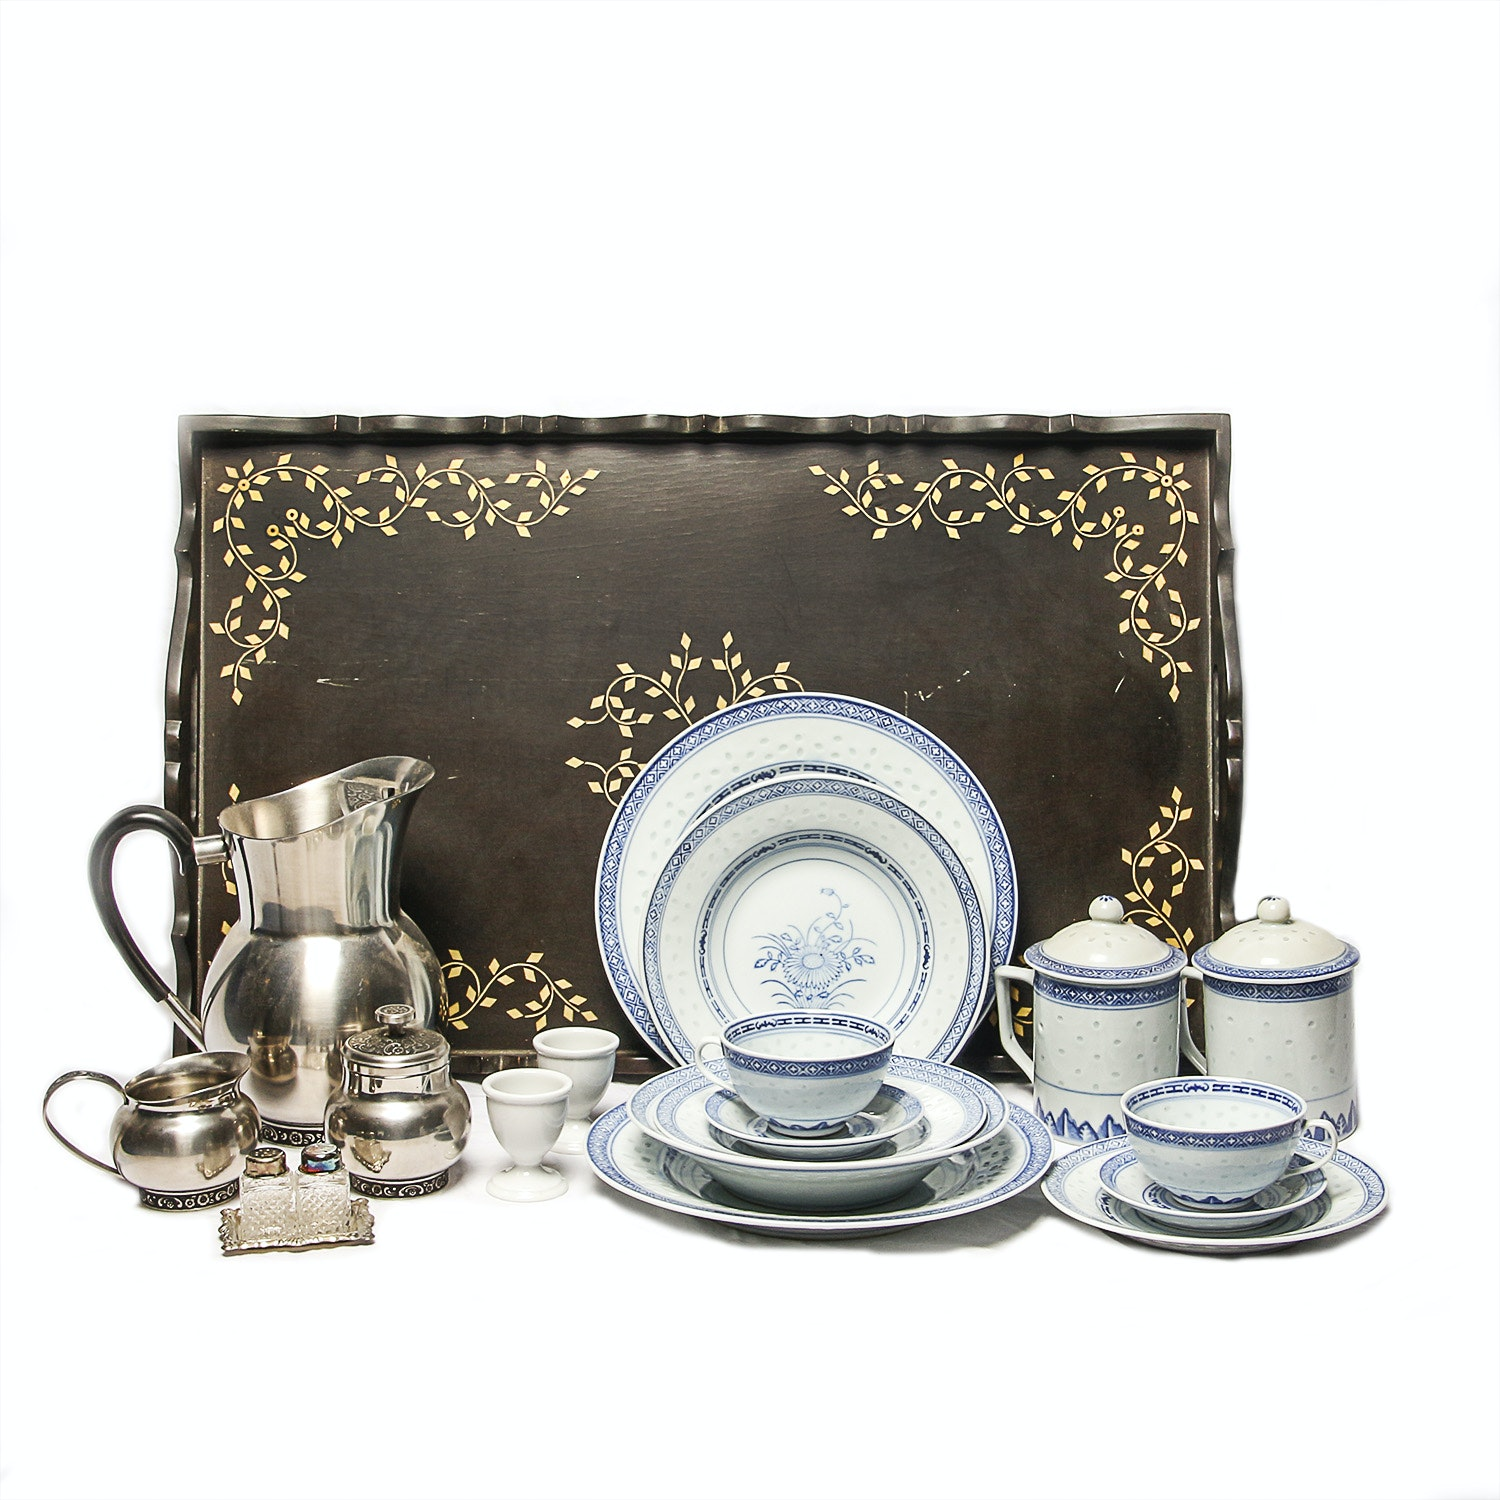 Chinese Porcelain and Metal Tableware with Tray